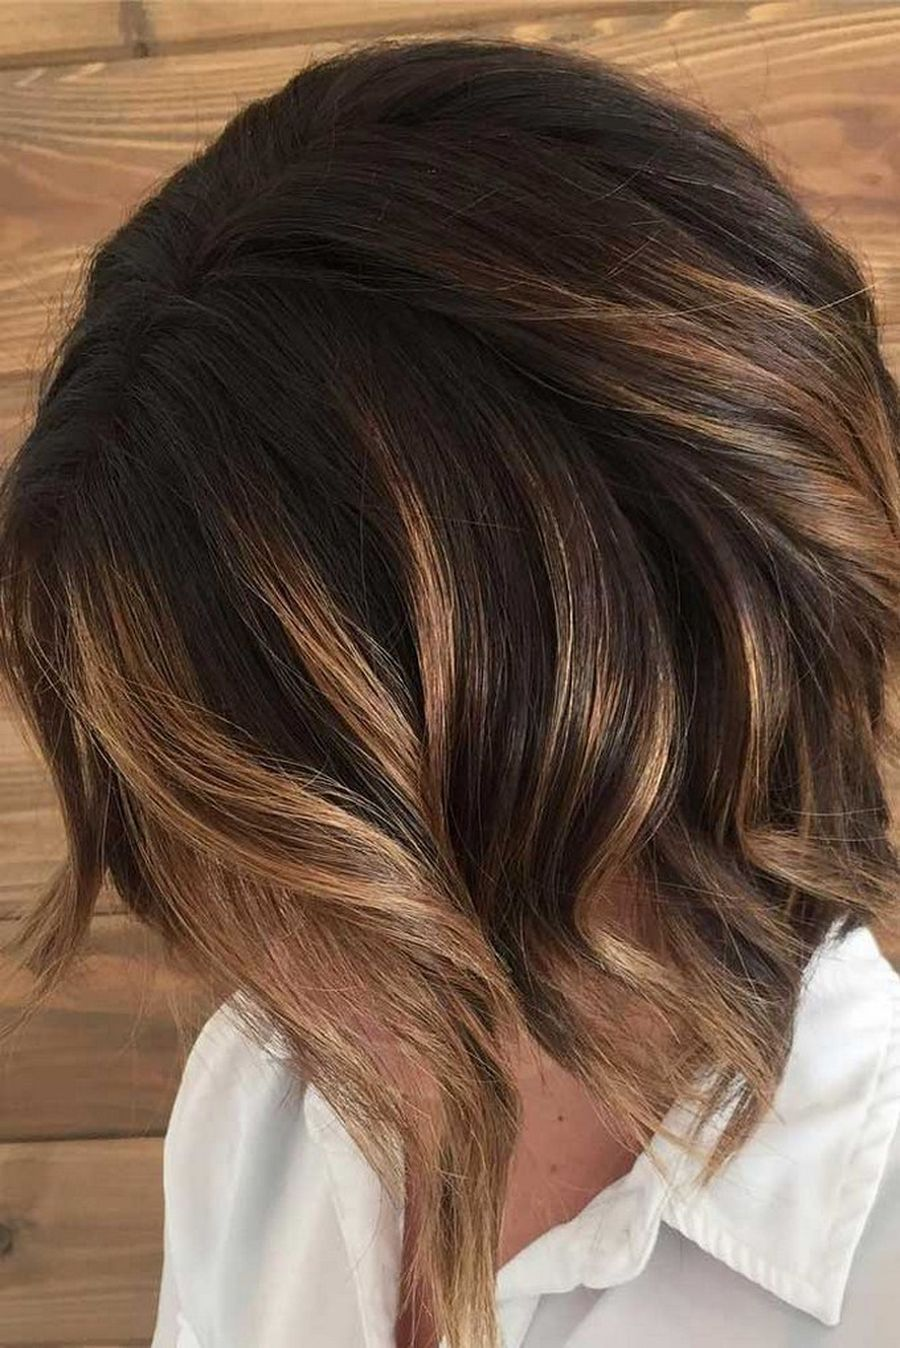 Inspiring haircolor style for winter and fall 20